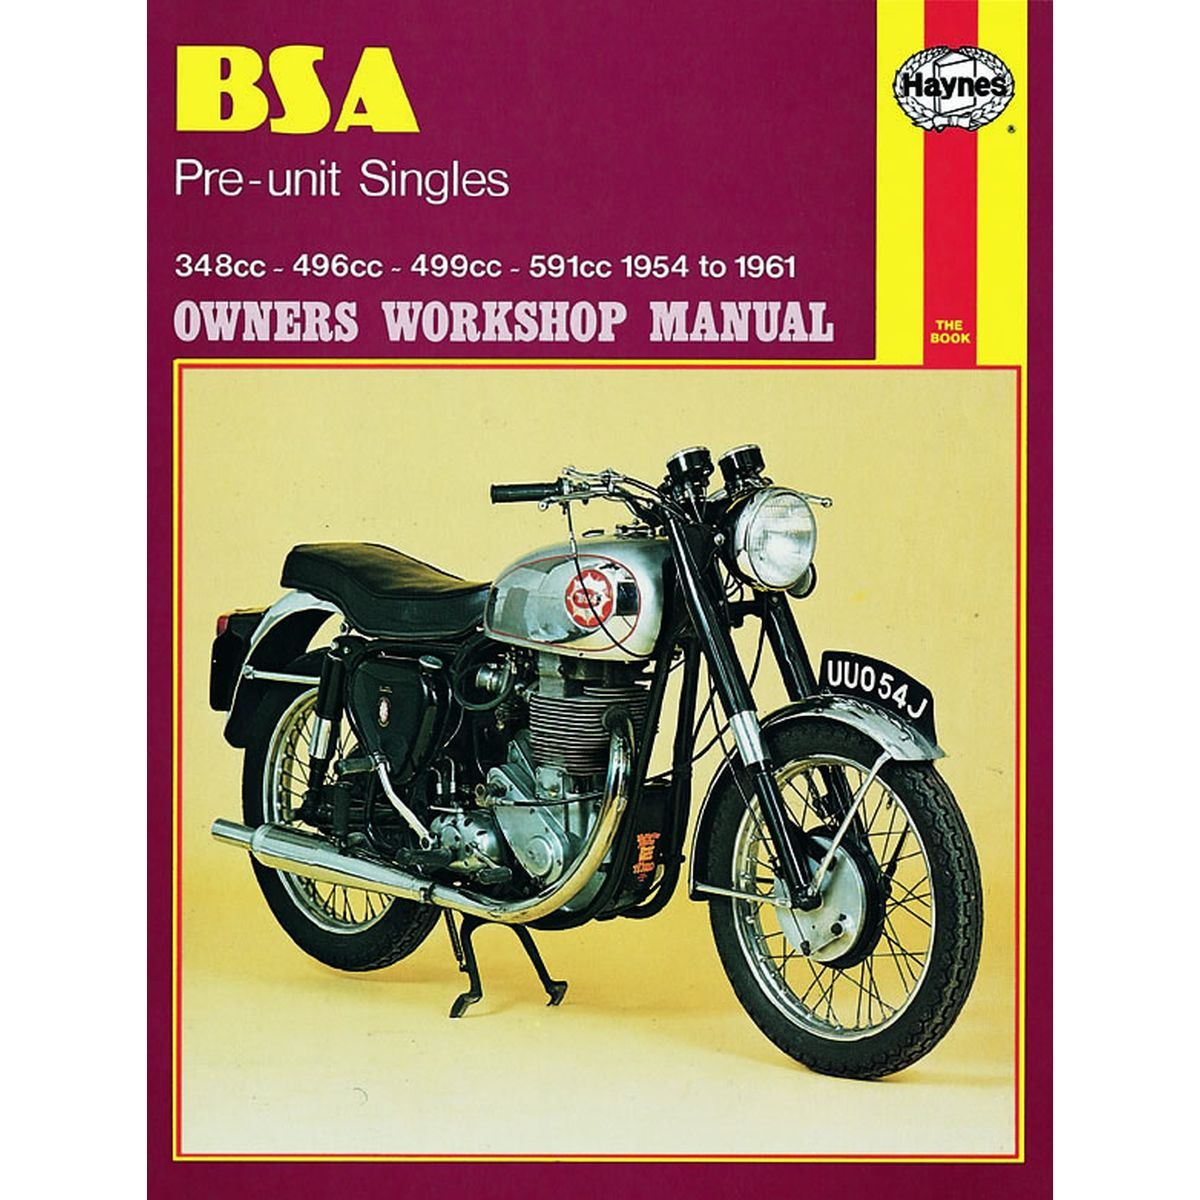 Manual Haynes for 1956 BSA CB/DB/DBD34 Goldstar (499cc)